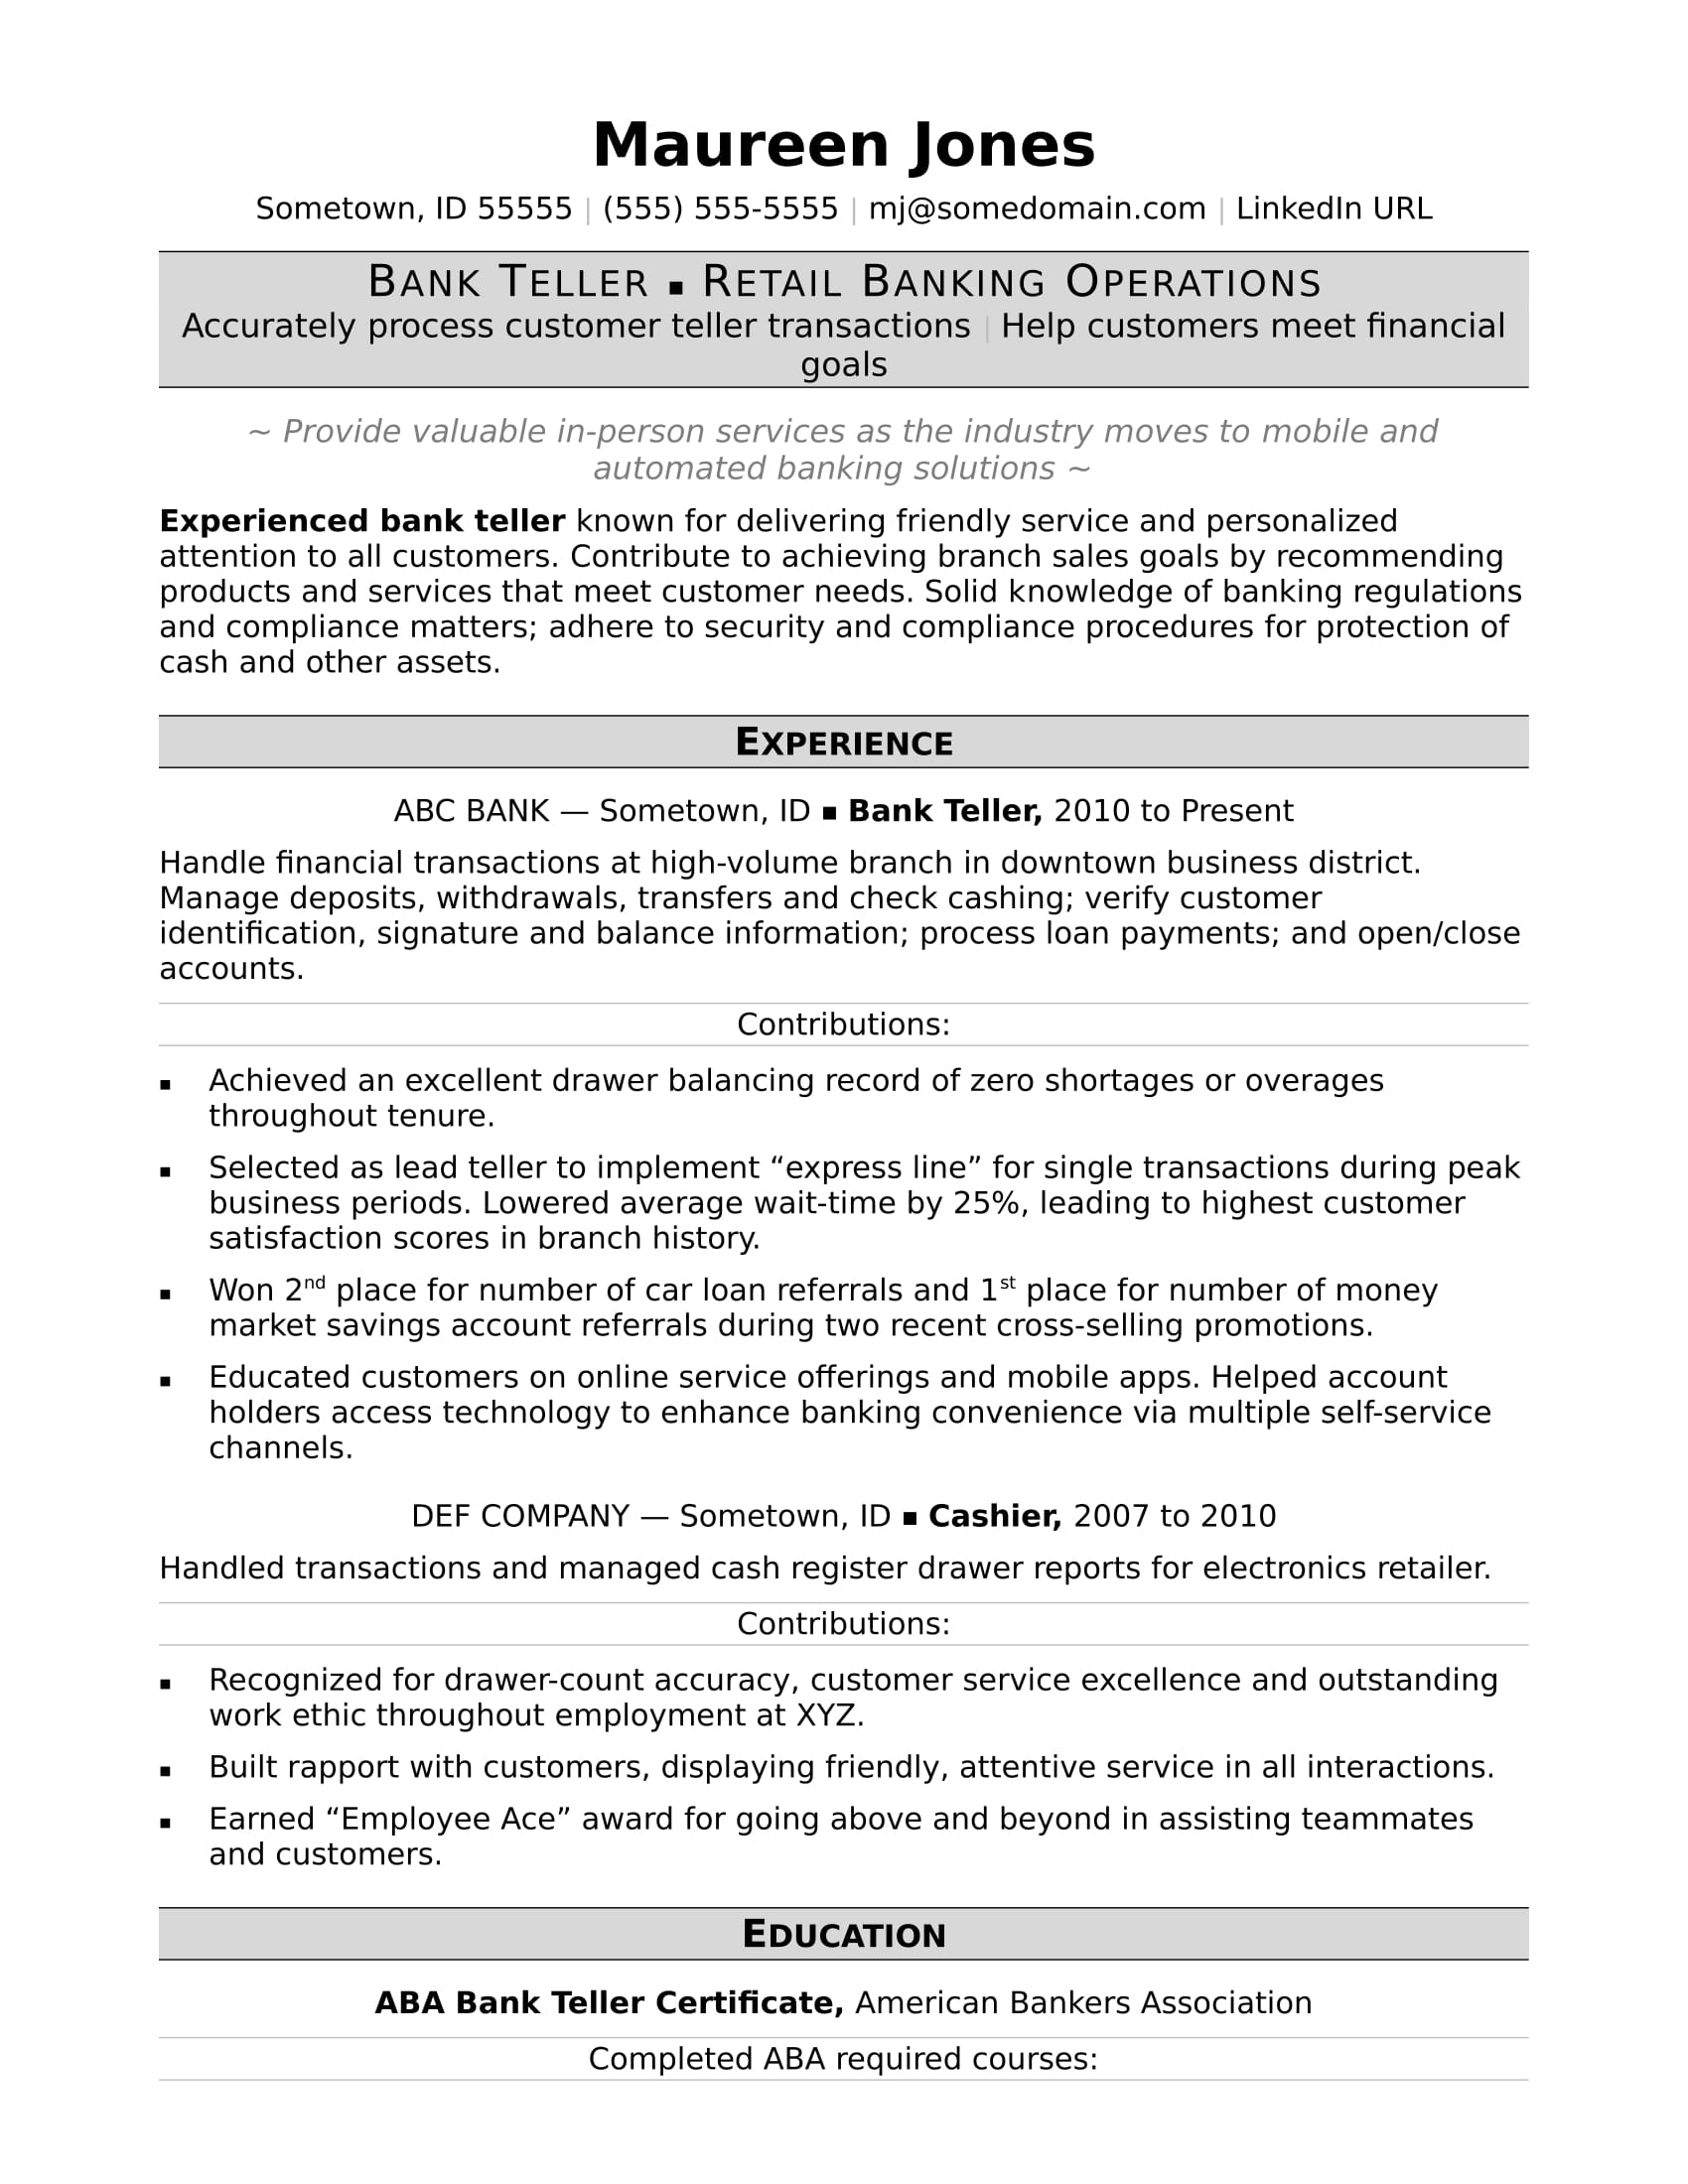 bank resume sample monster friendly template bankteller without dates erp system Resume Mobile Friendly Resume Template